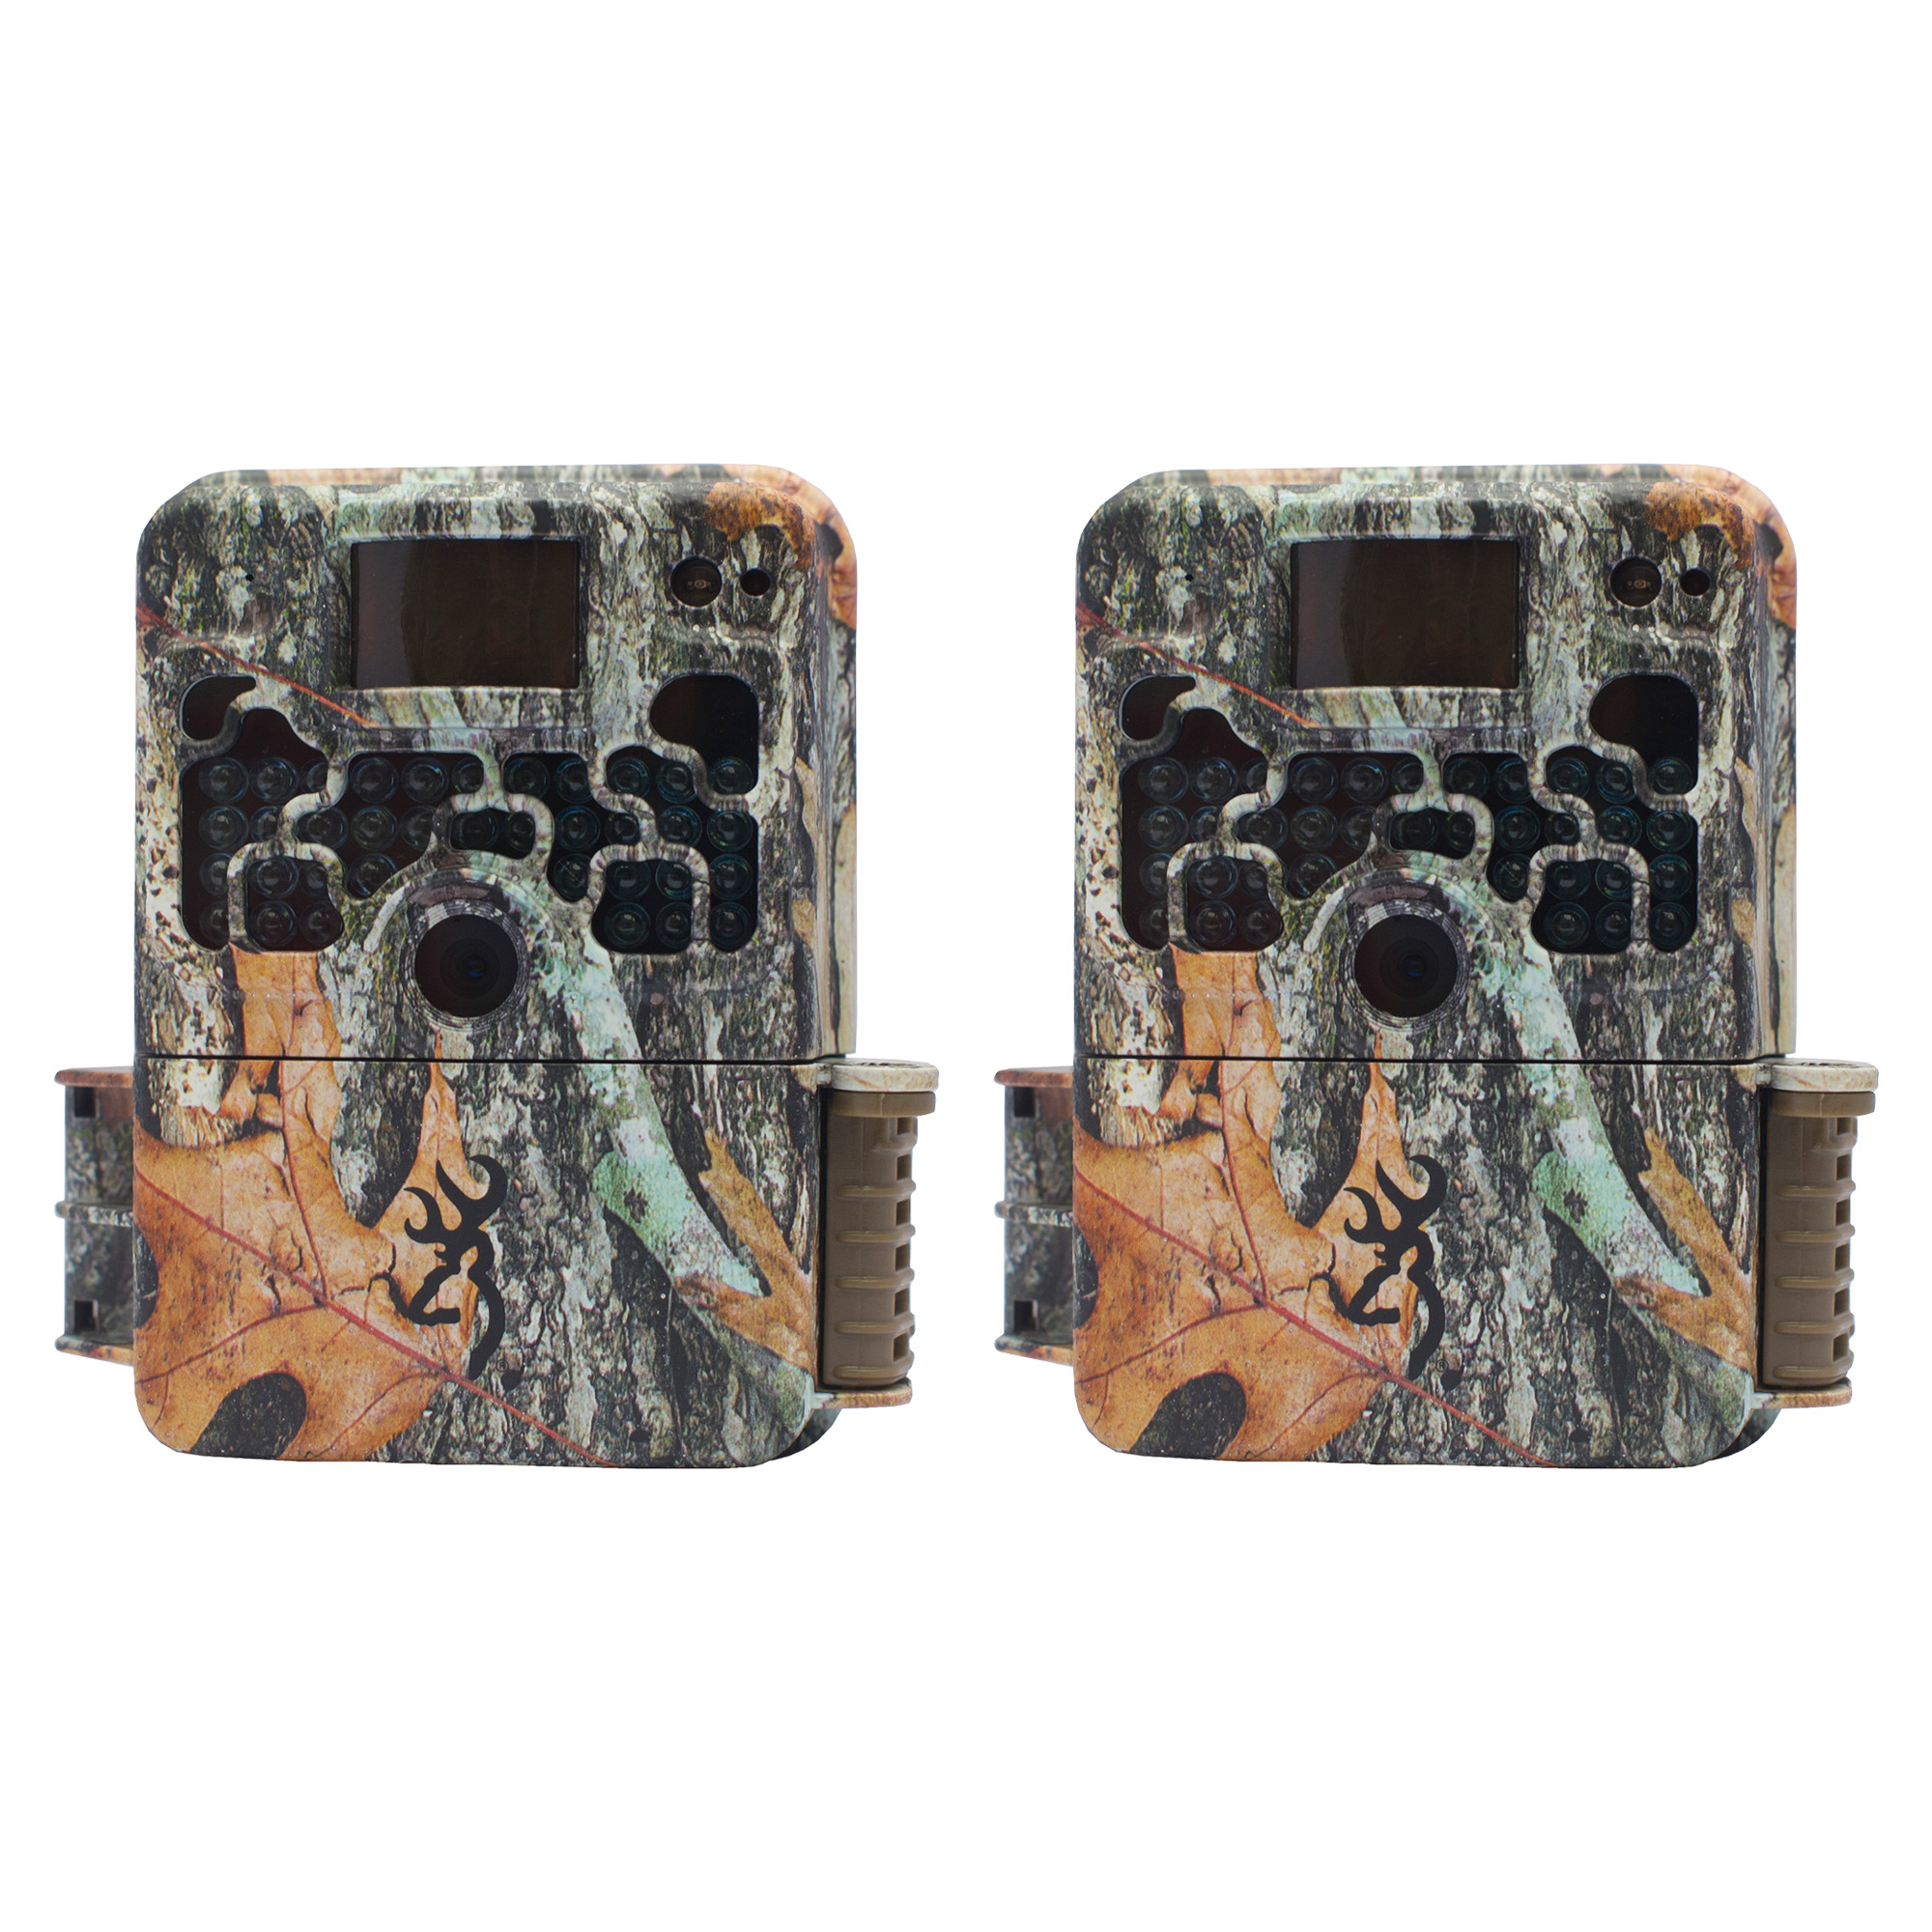 Browning Trail Cameras Strike Force 850 16MP Game Camera, 2 Pack | BTC-5HD-850 by Browning Trail Cameras